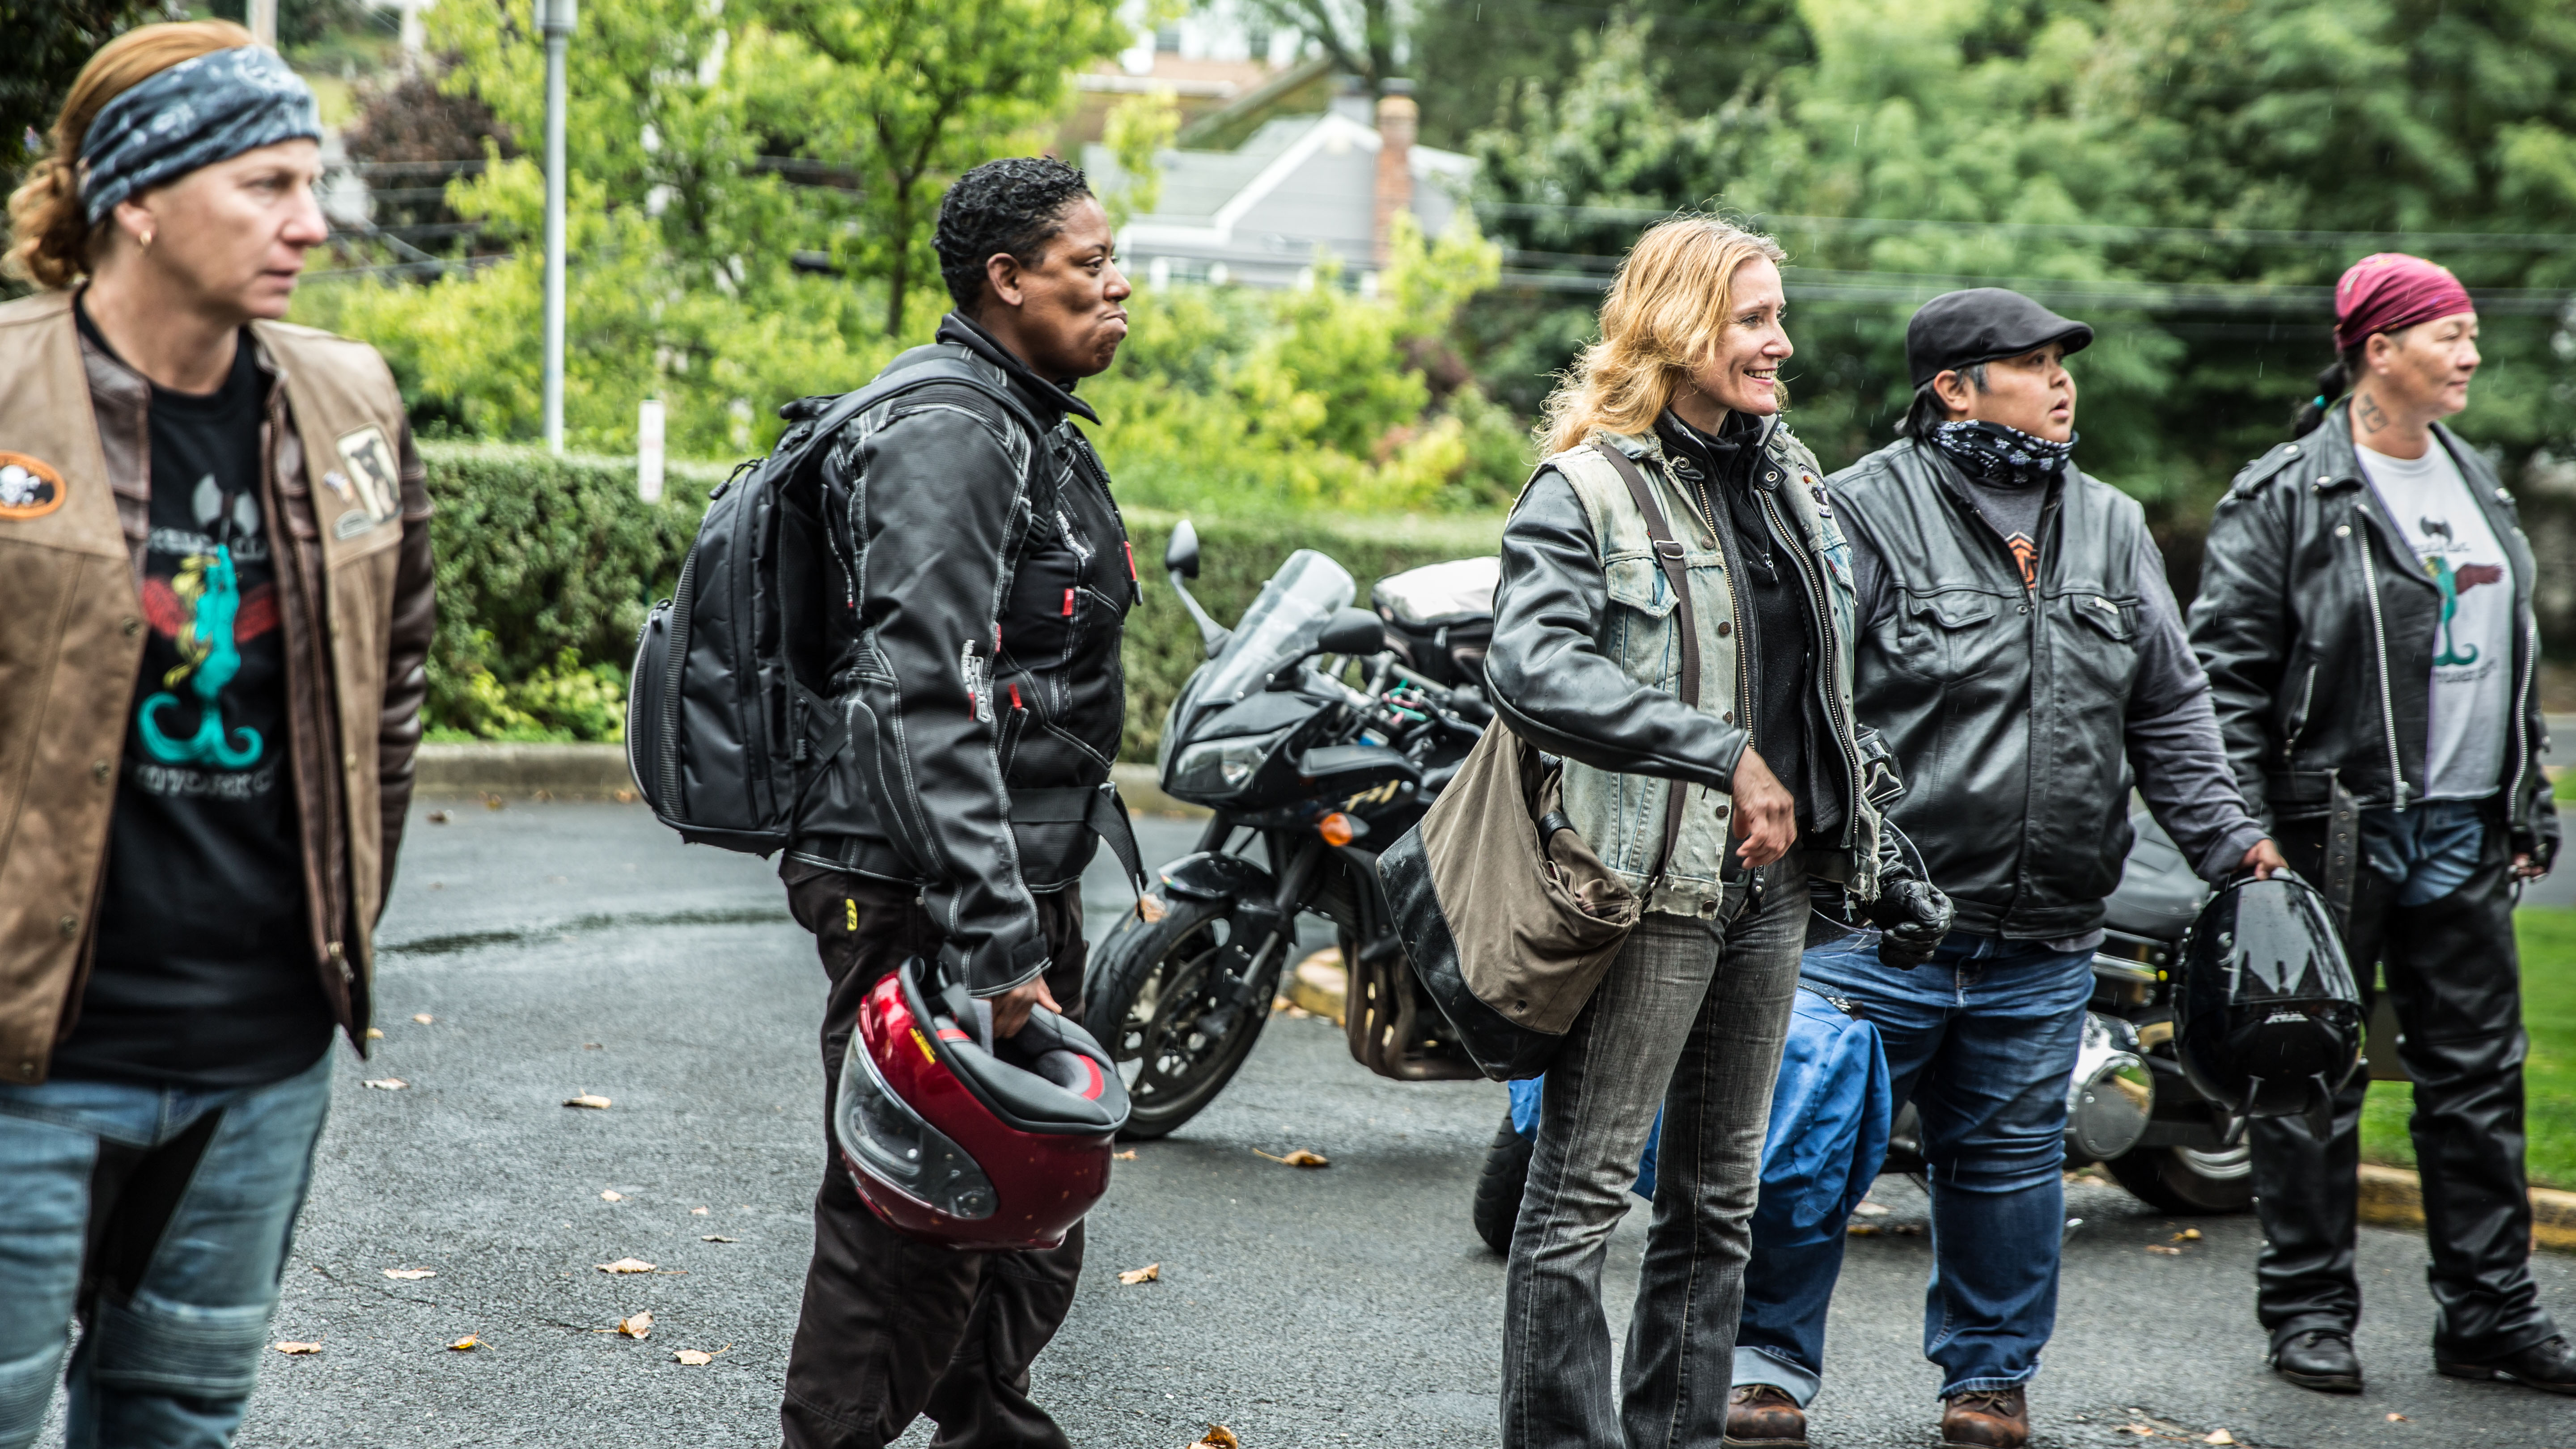 Female bikers beat NYC traffic to deliver breast milk to premature infants